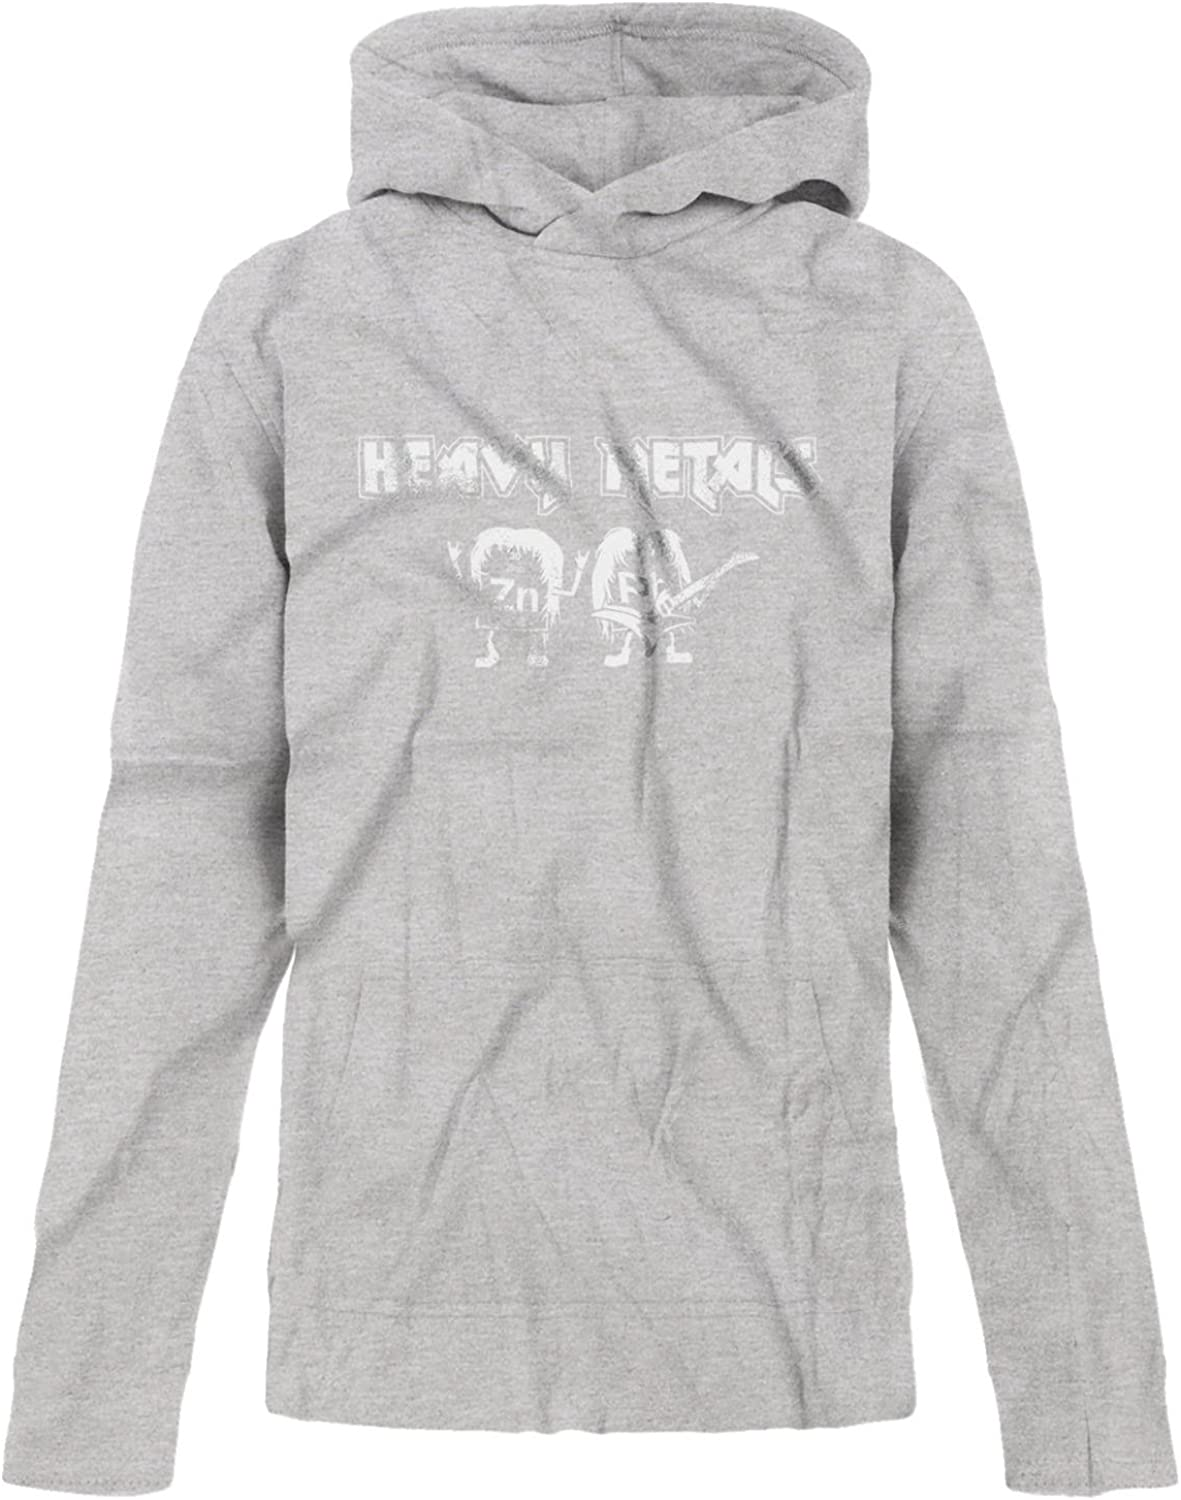 BSW Youth Girls Heavy Metals Periodic Table Horns Guitar Music Hoodie